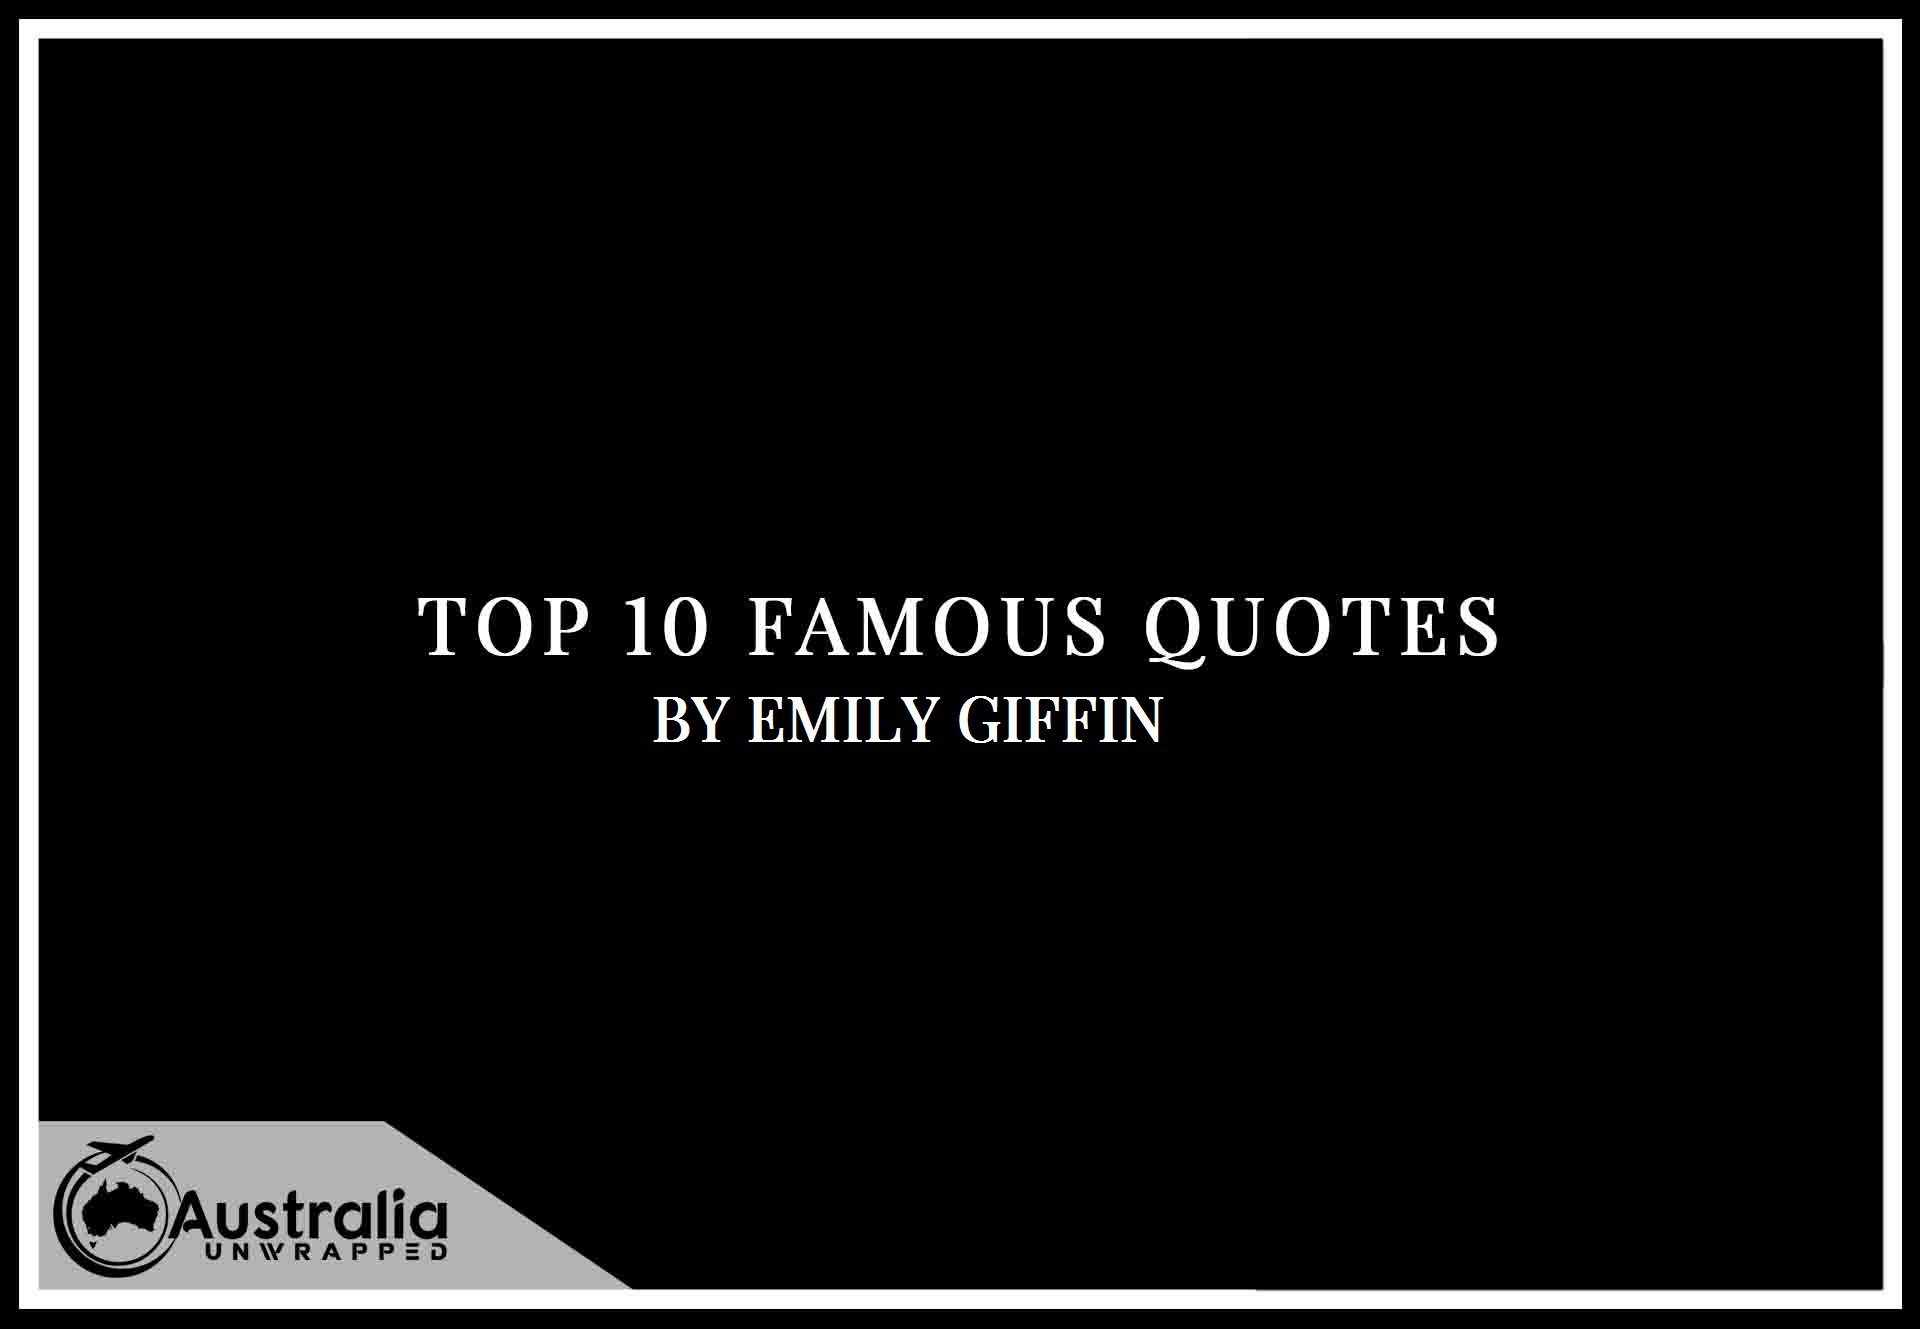 Emily Giffin's Top 10 Popular and Famous Quotes